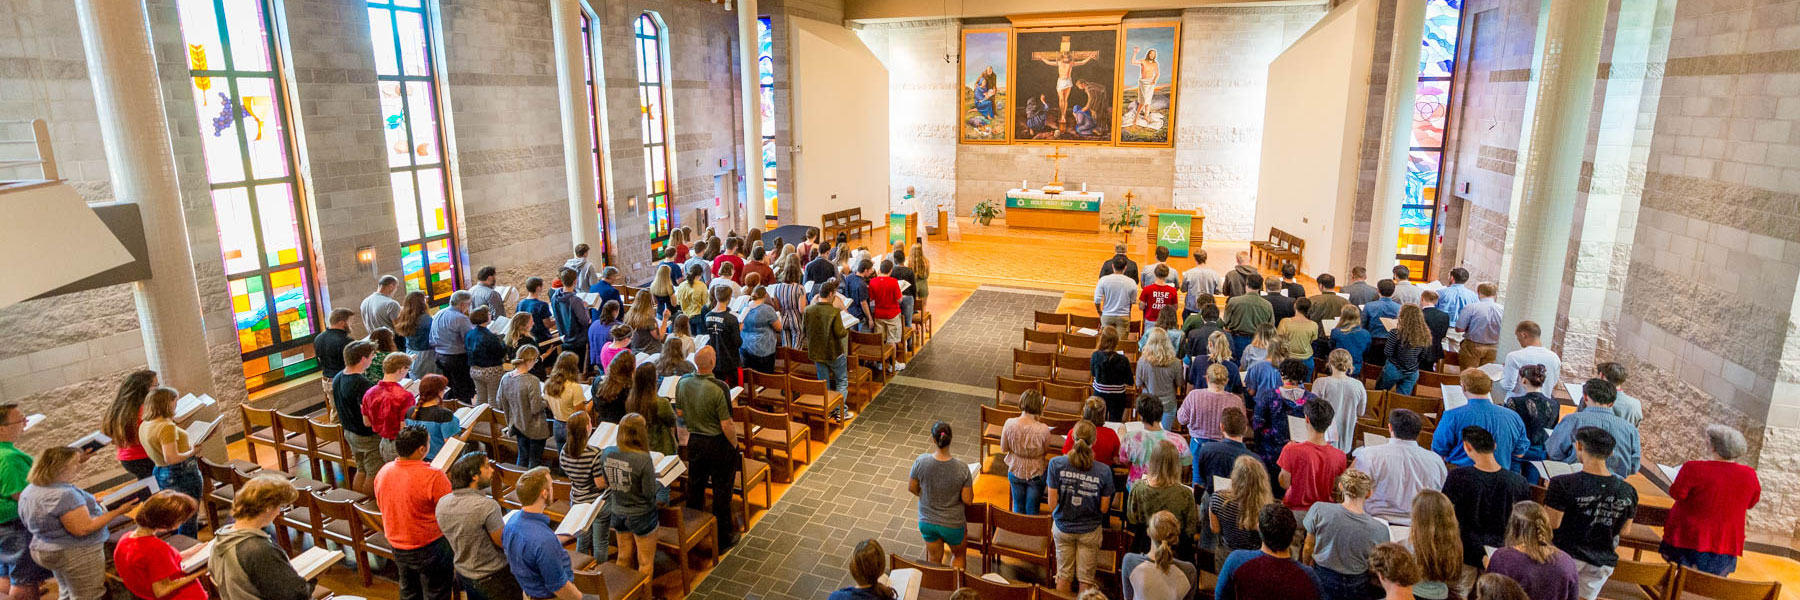 students, faculty, and staff standing in rows of chairs during a chapel service in trinity chapel